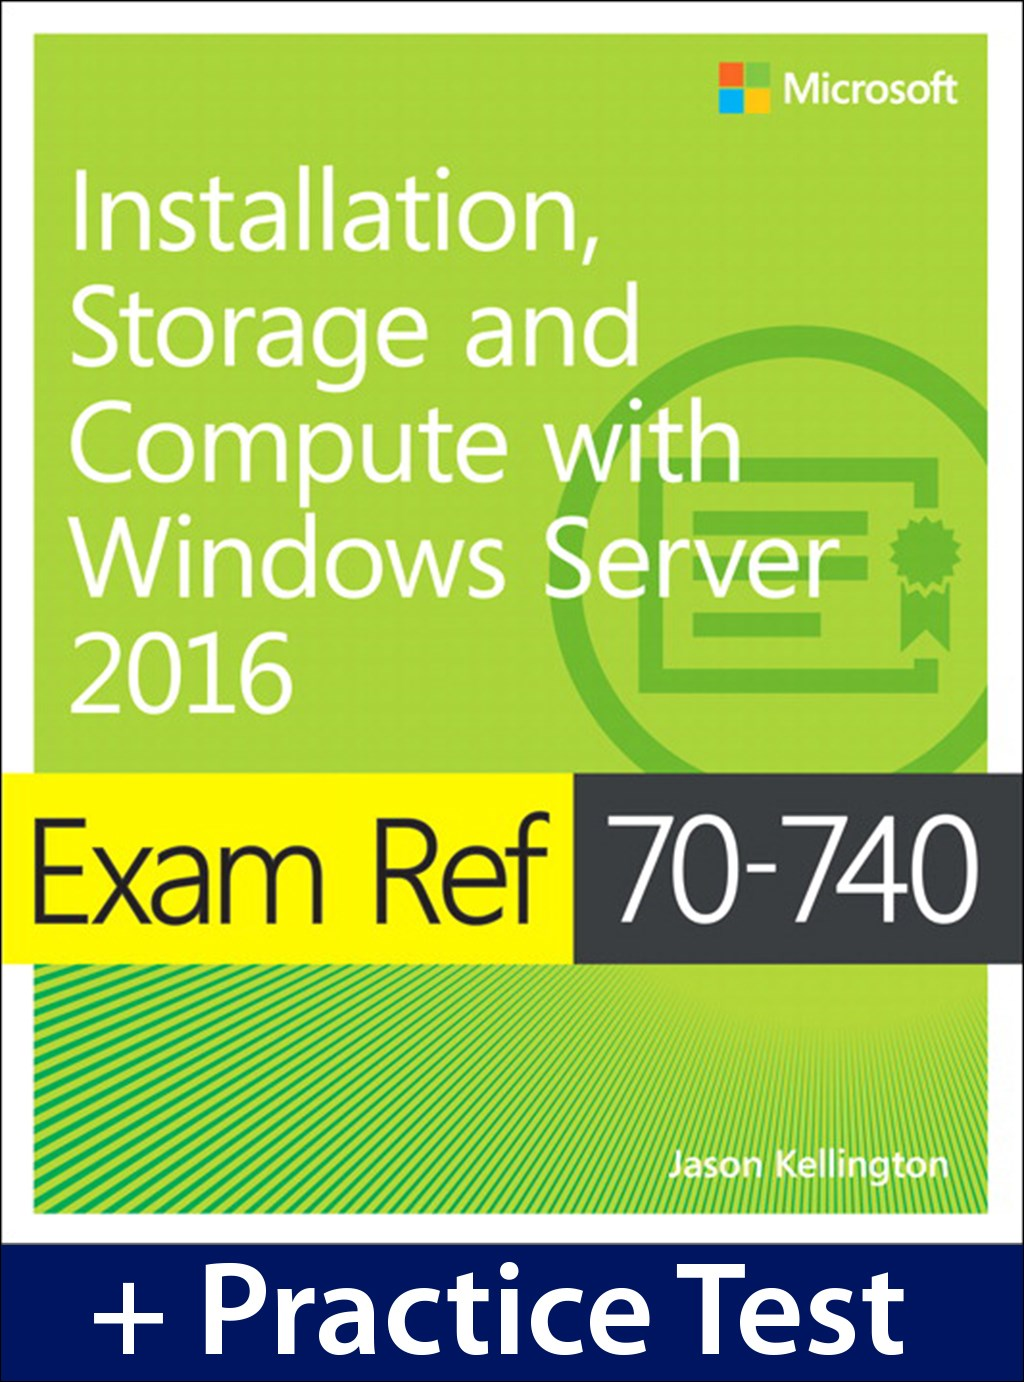 Exam Ref 70-740 Installation, Storage, and Compute with Windows Server 2016 with Practice Test